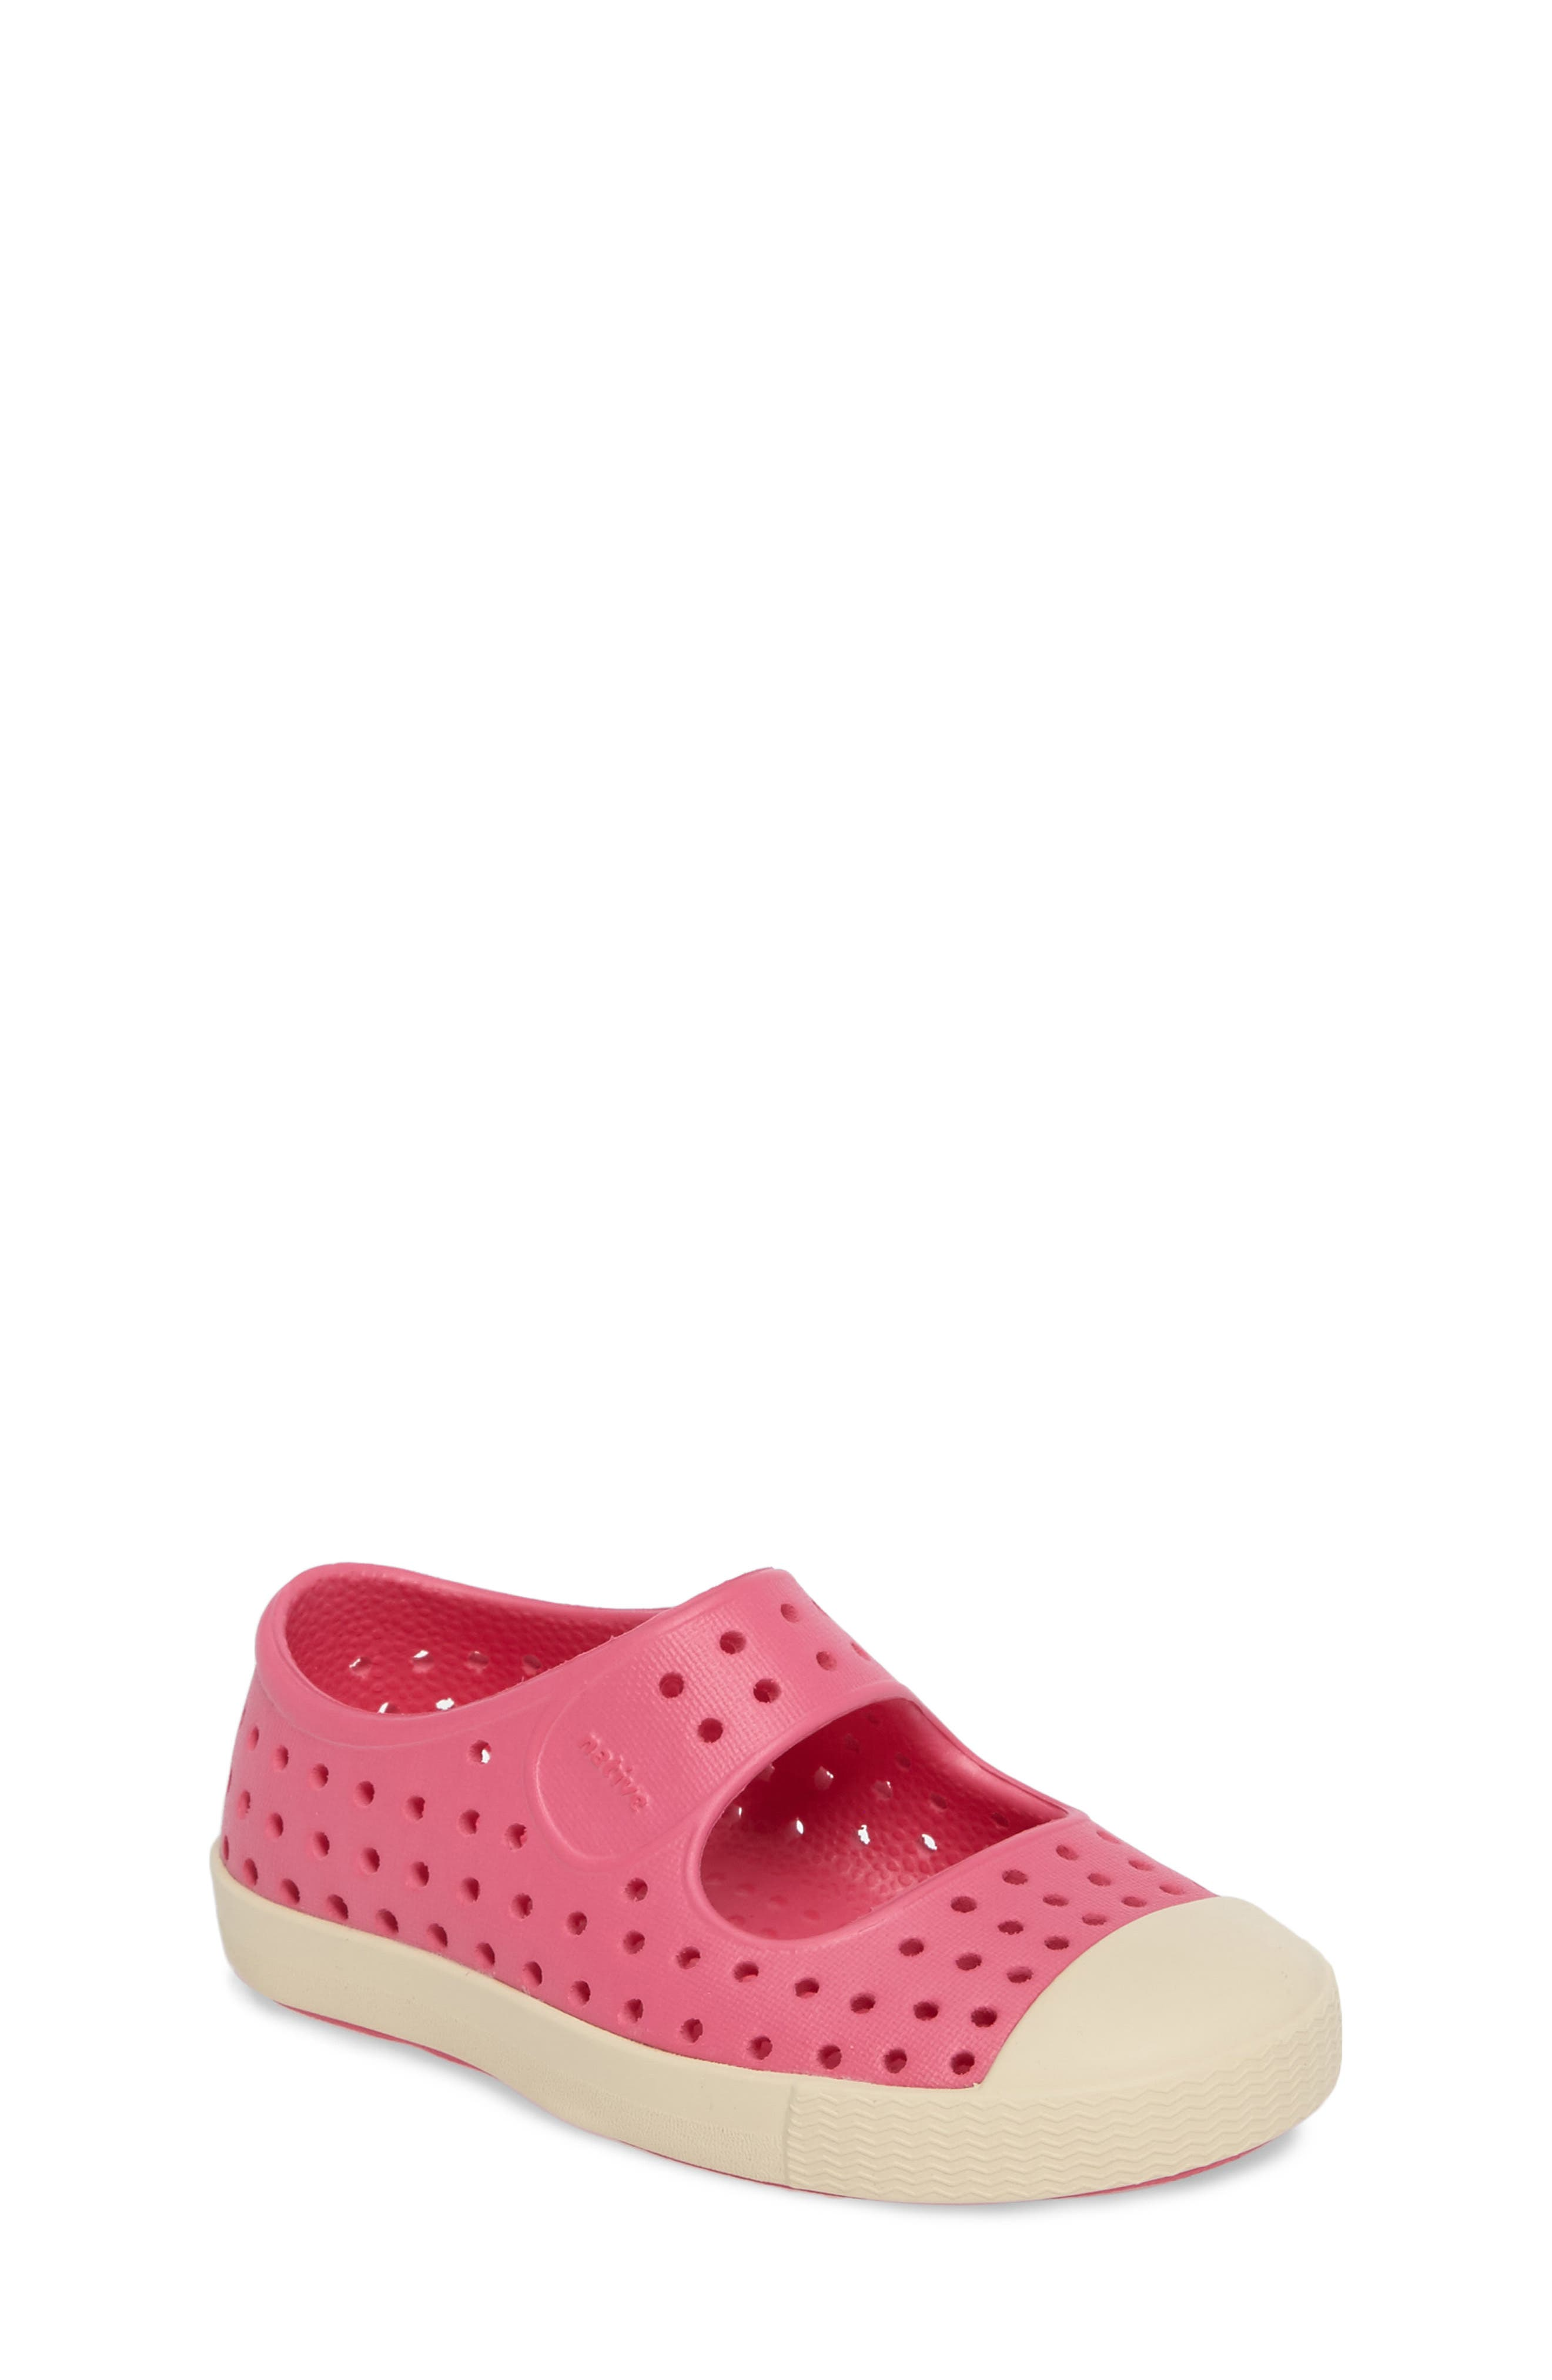 Native Shoes Juniper Perforated Mary Jane (Baby, Walker, Toddler & Little Kid)